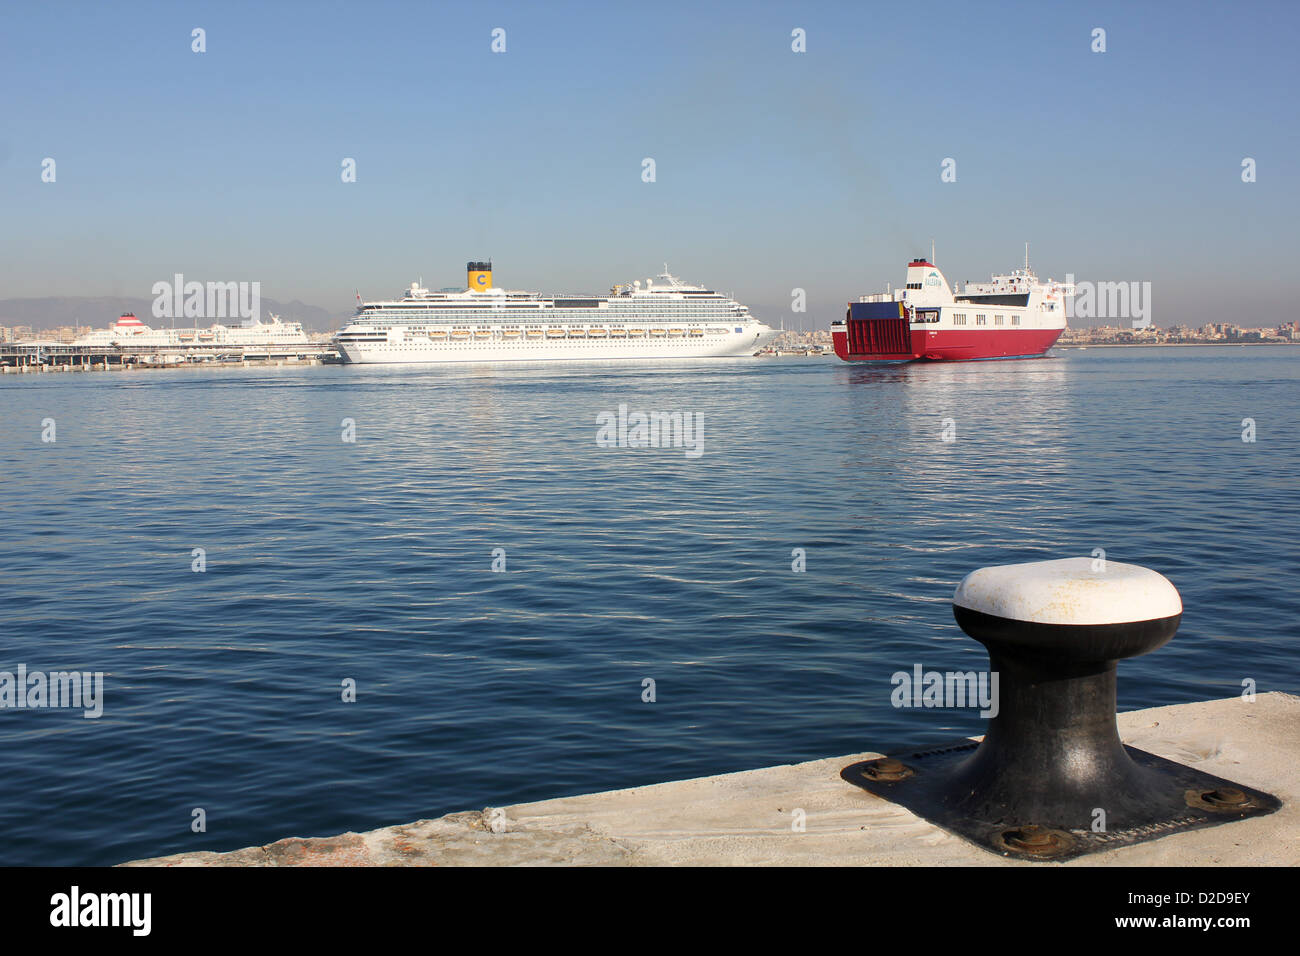 """Balearia Roll on Roll off (Ro-Ro) cargo ferry """"VISEMAR ONE"""" – daily midday departure for Barcelona - Palma de Mallorca. - Stock Image"""